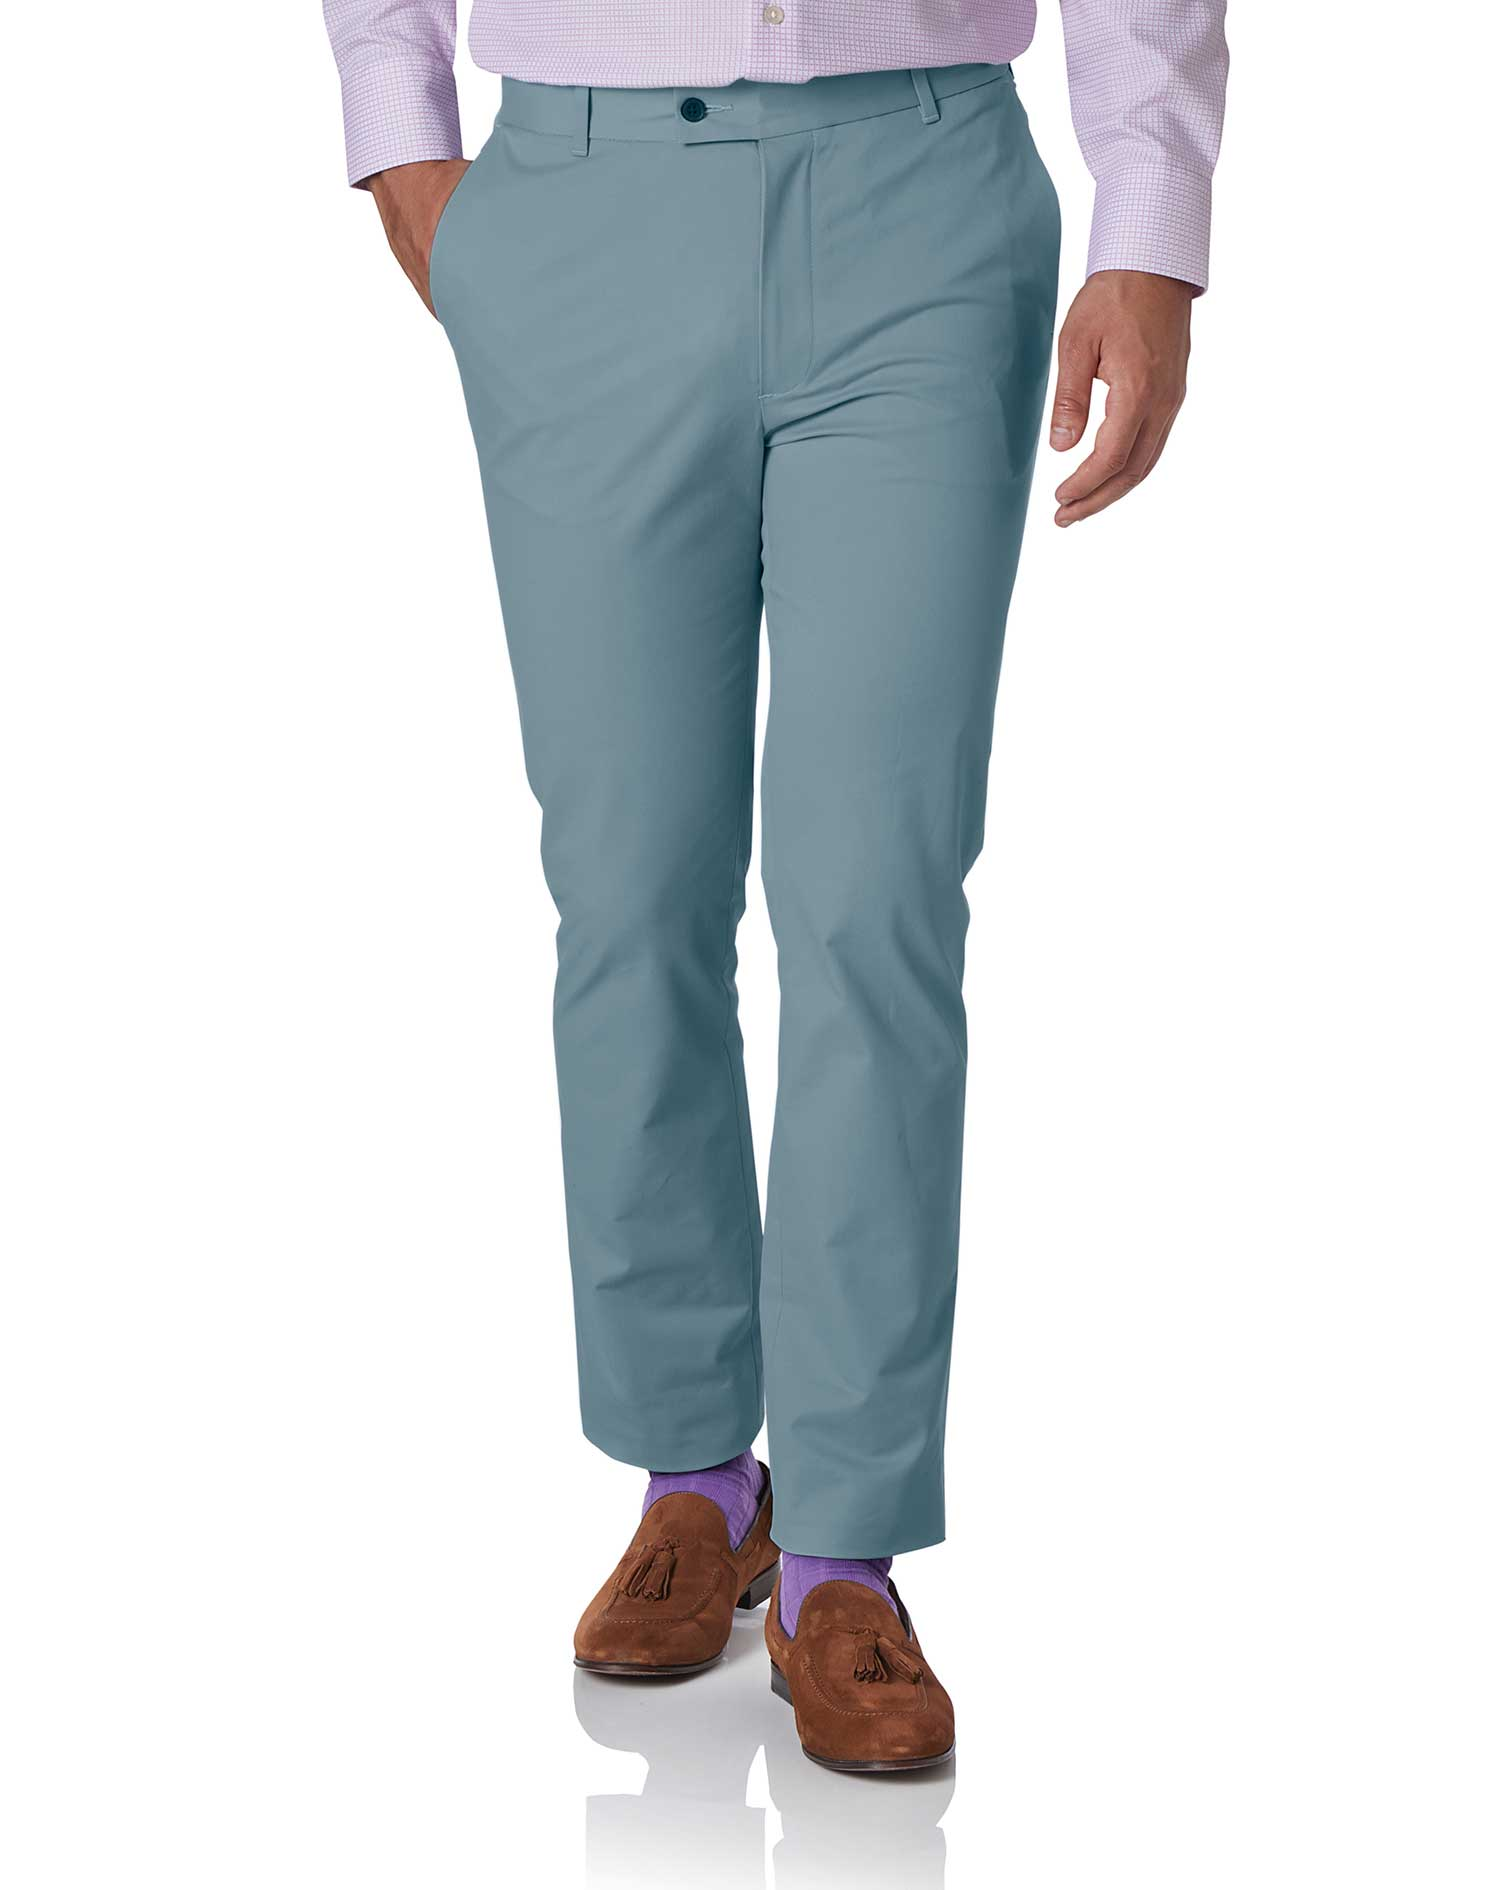 Sky Blue Extra Slim Fit Stretch Cotton Chino Trousers Size W32 L32 by Charles Tyrwhitt